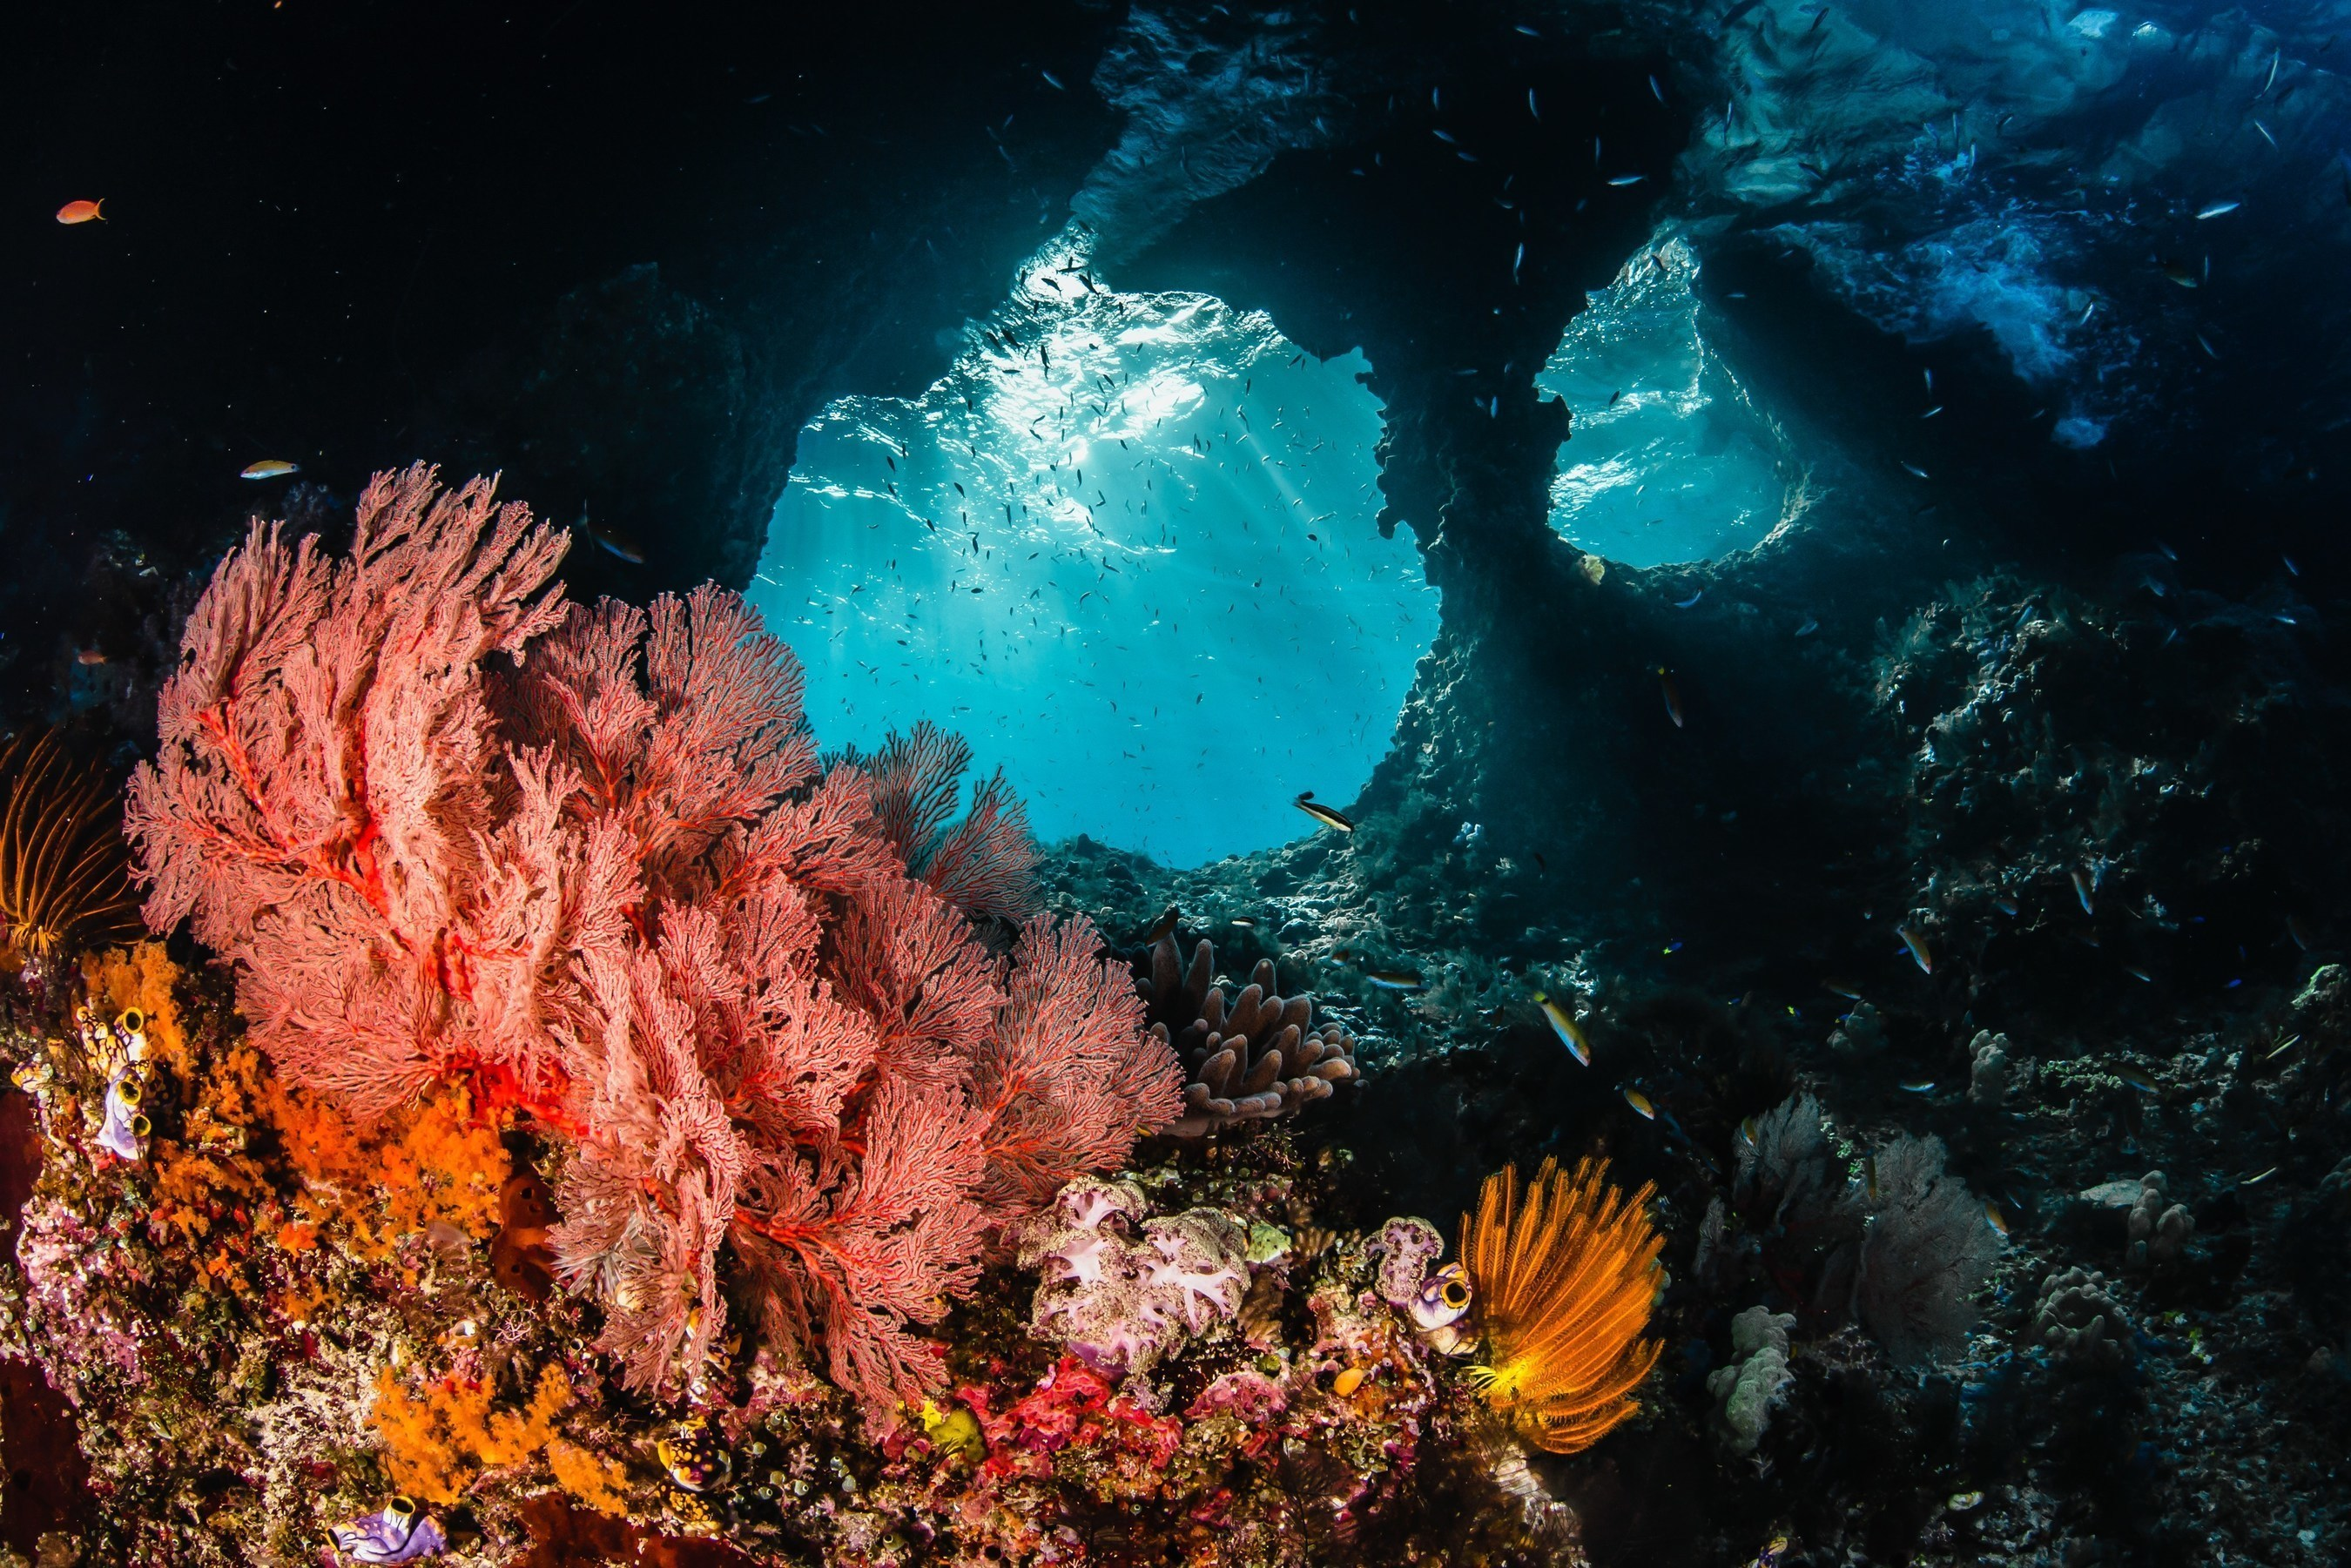 Morning rays burst through a window illuminating the brilliant reefs of Raja Ampat, Indonesia. Credit: Shawn Heinrichs